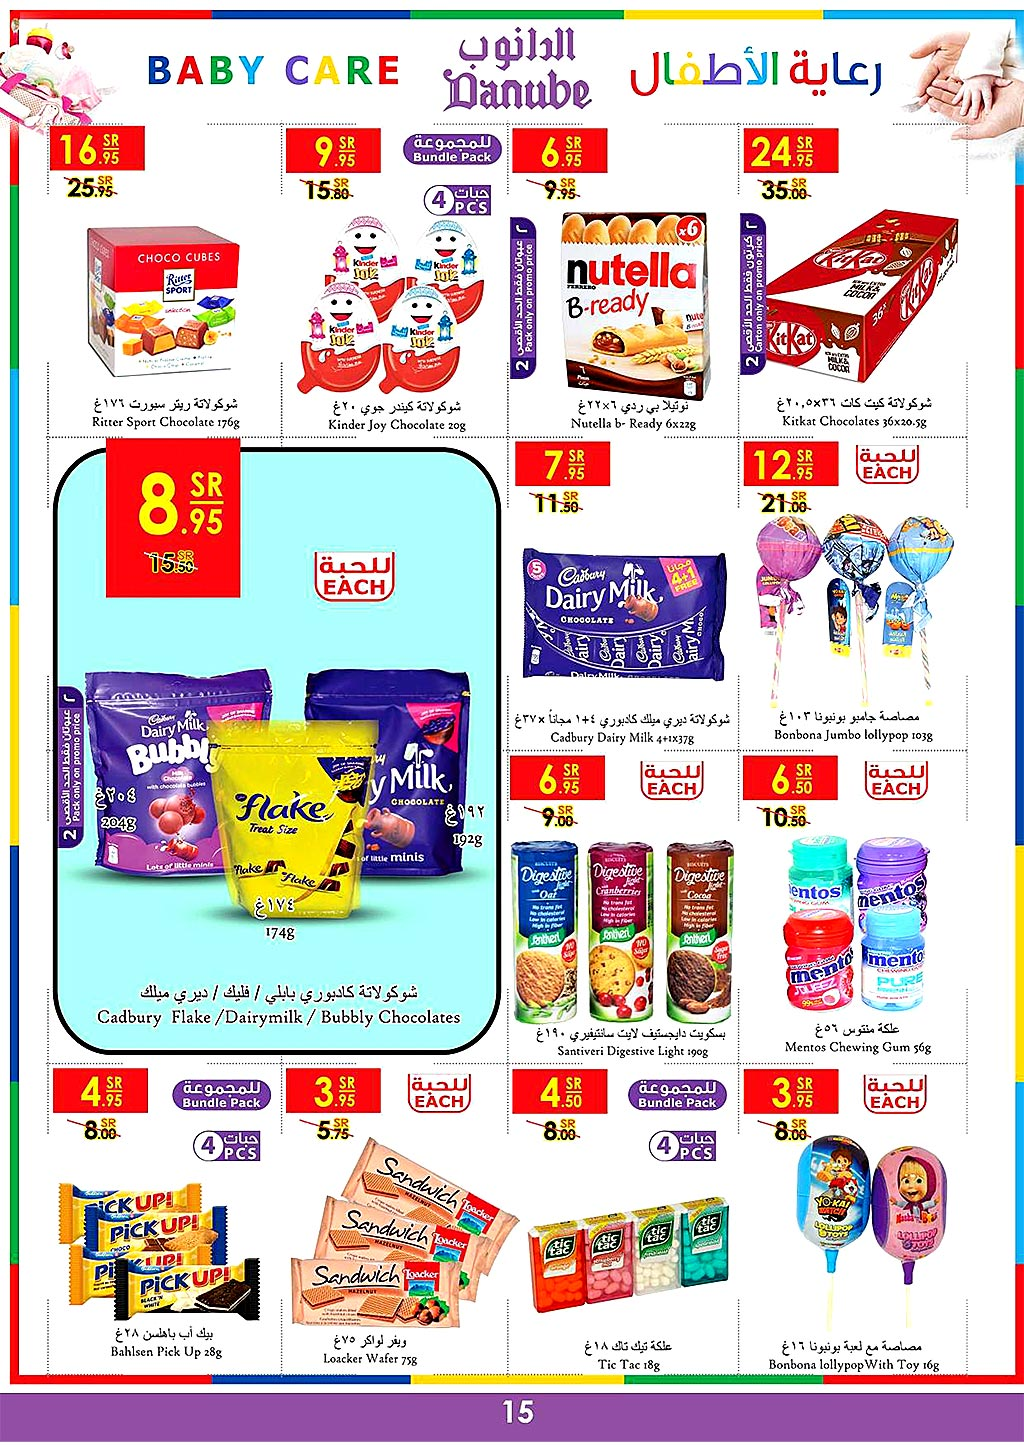 danube offers from 24july to 30july 2019 page number 14 عروض الدانوب من 24 يوليو حتى 30 يوليو 2019 صفحة رقم 14